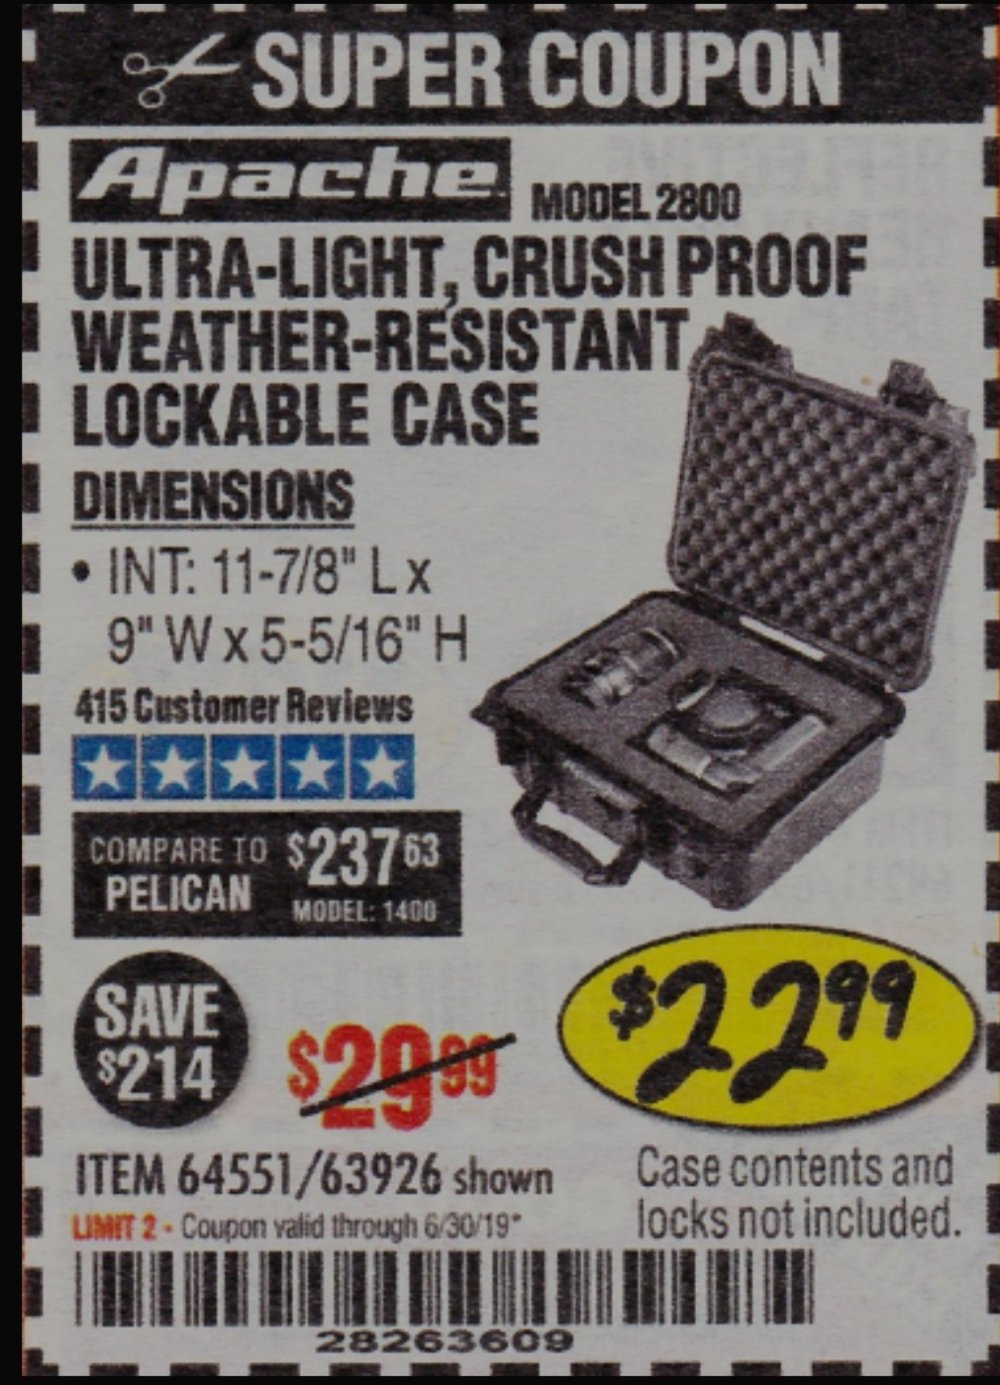 Harbor Freight Coupon, HF Coupons - Apache 2800 Case